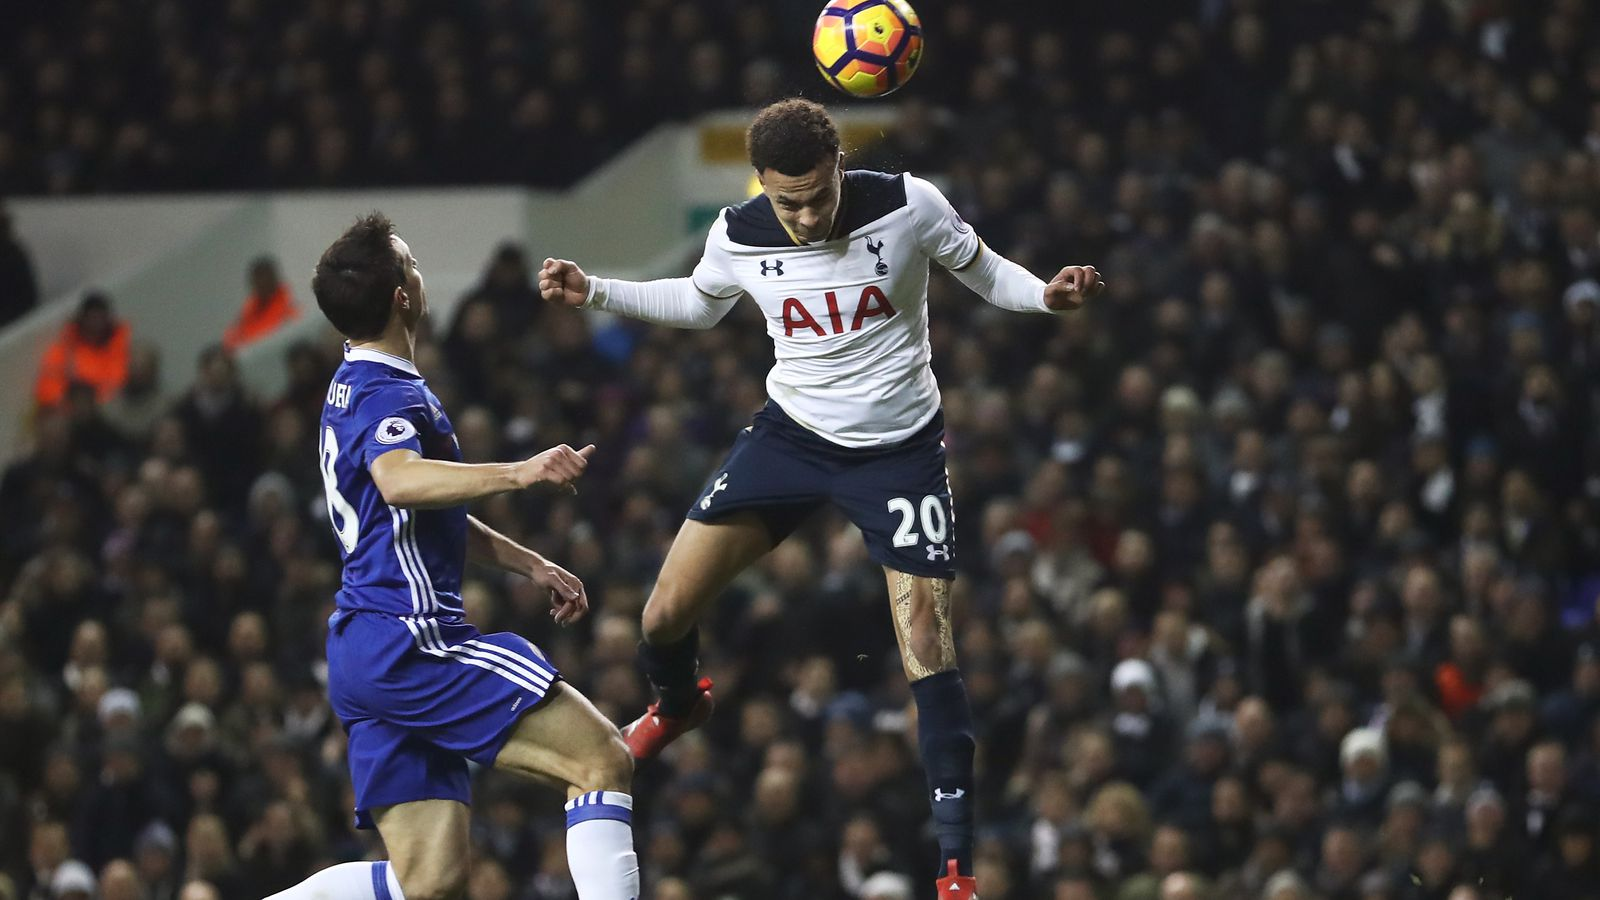 Tottenham Hotspur 2-0 Chelsea, Premier League: Post-match